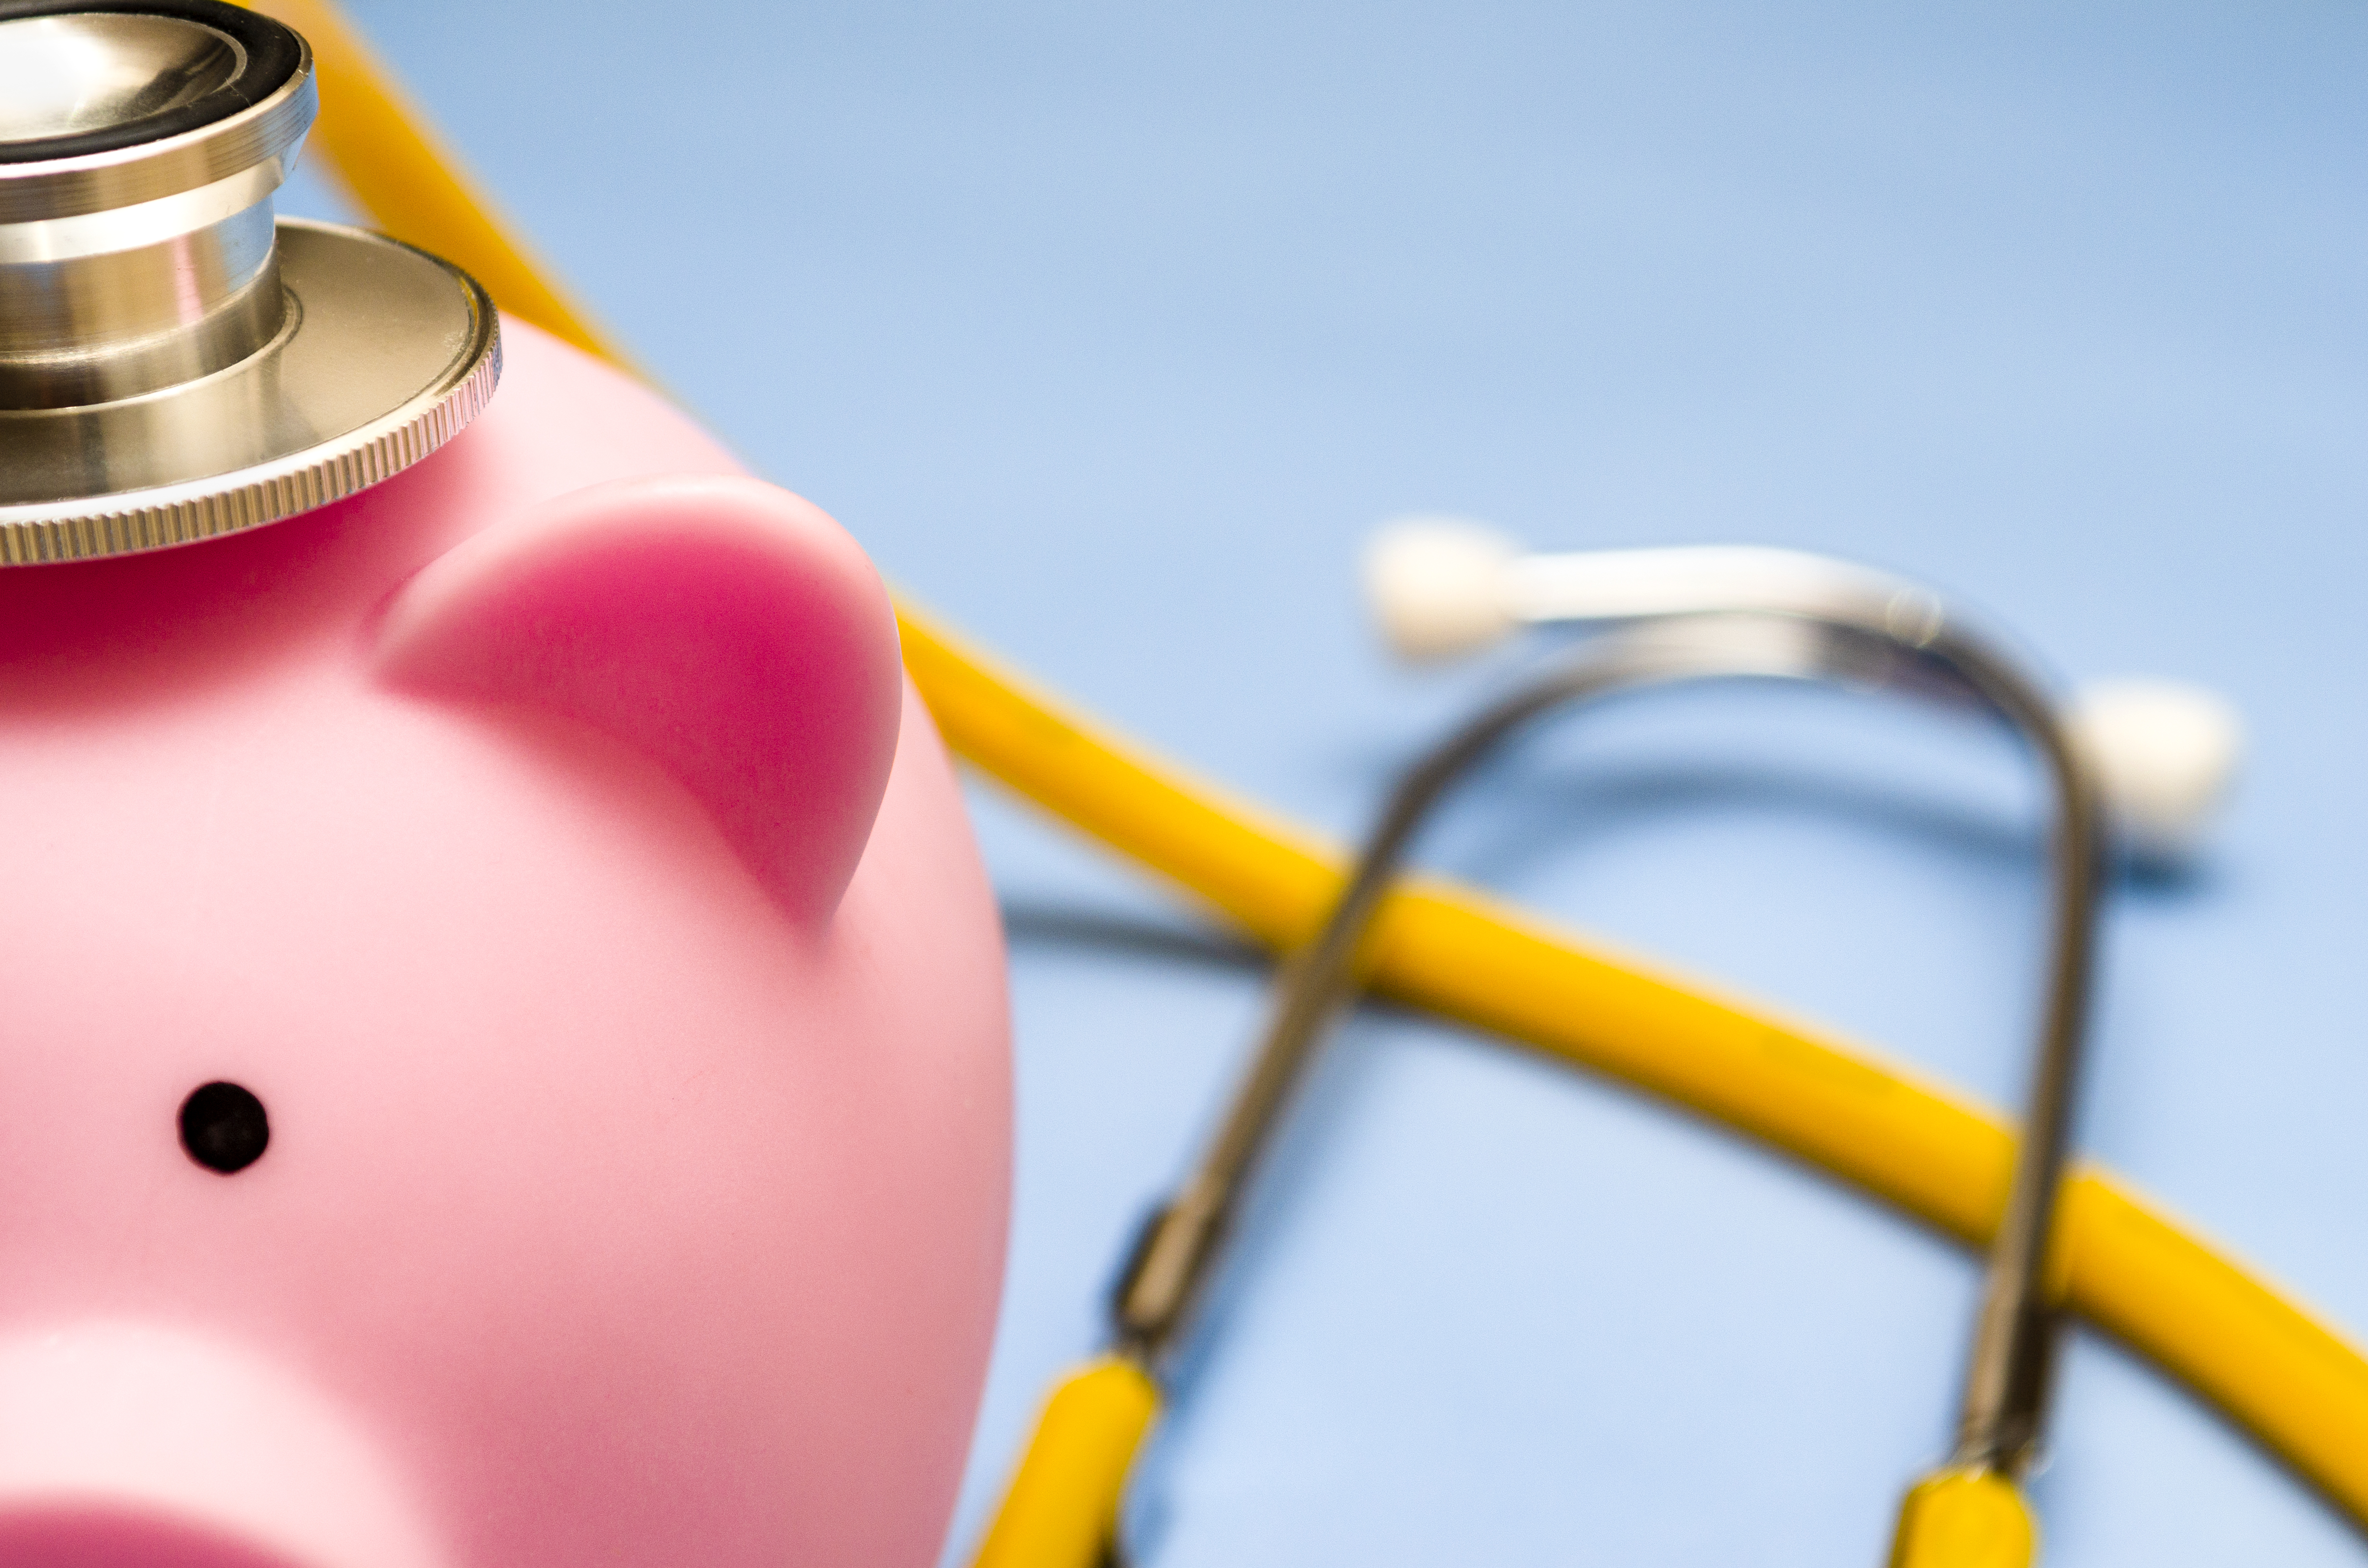 Insurer fee expected to spike 2020 group premiums